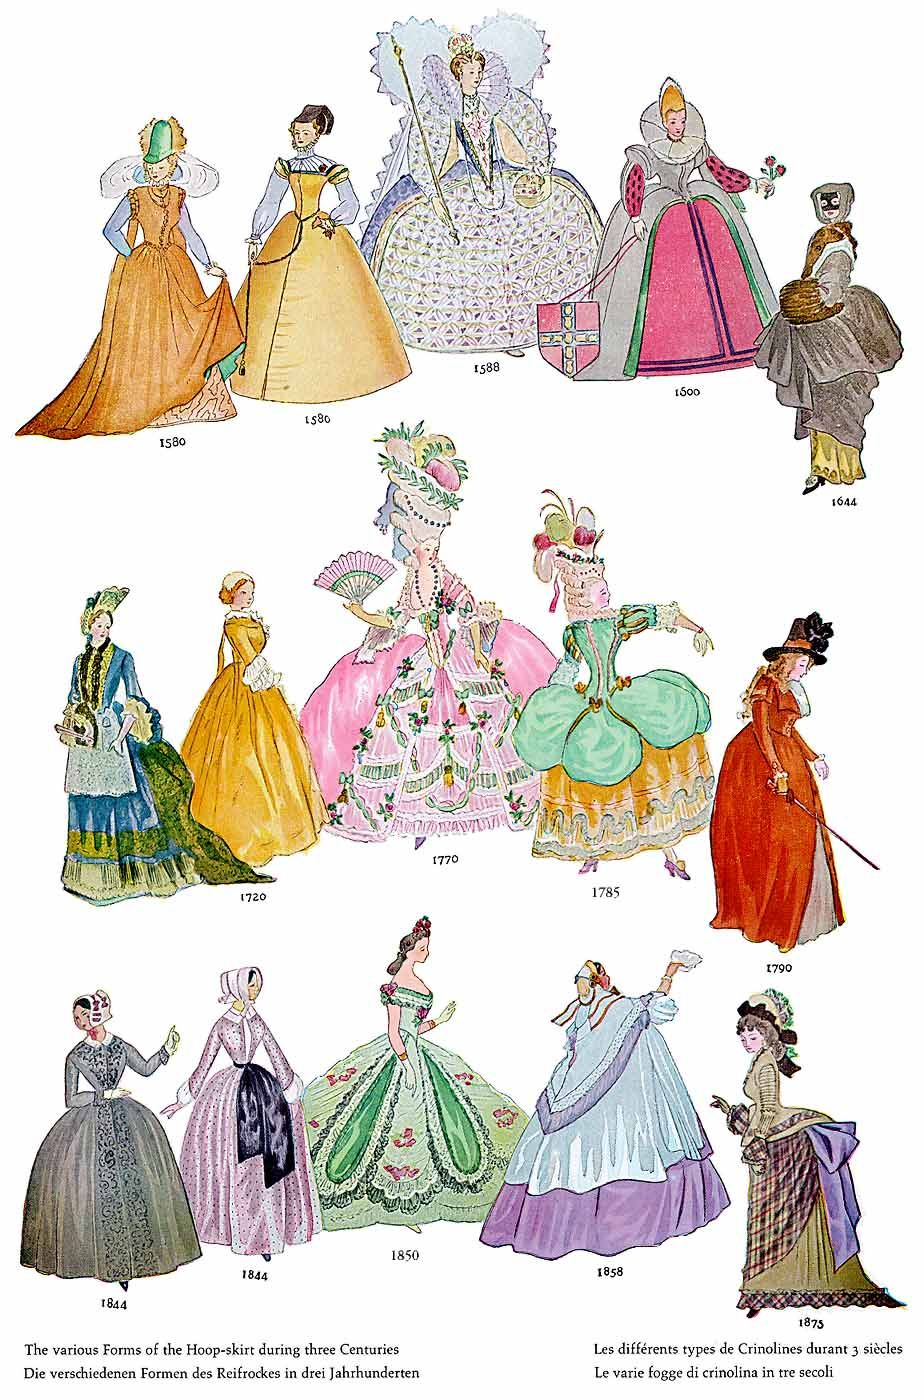 Late 18th century through early 19th century style of dress. This.